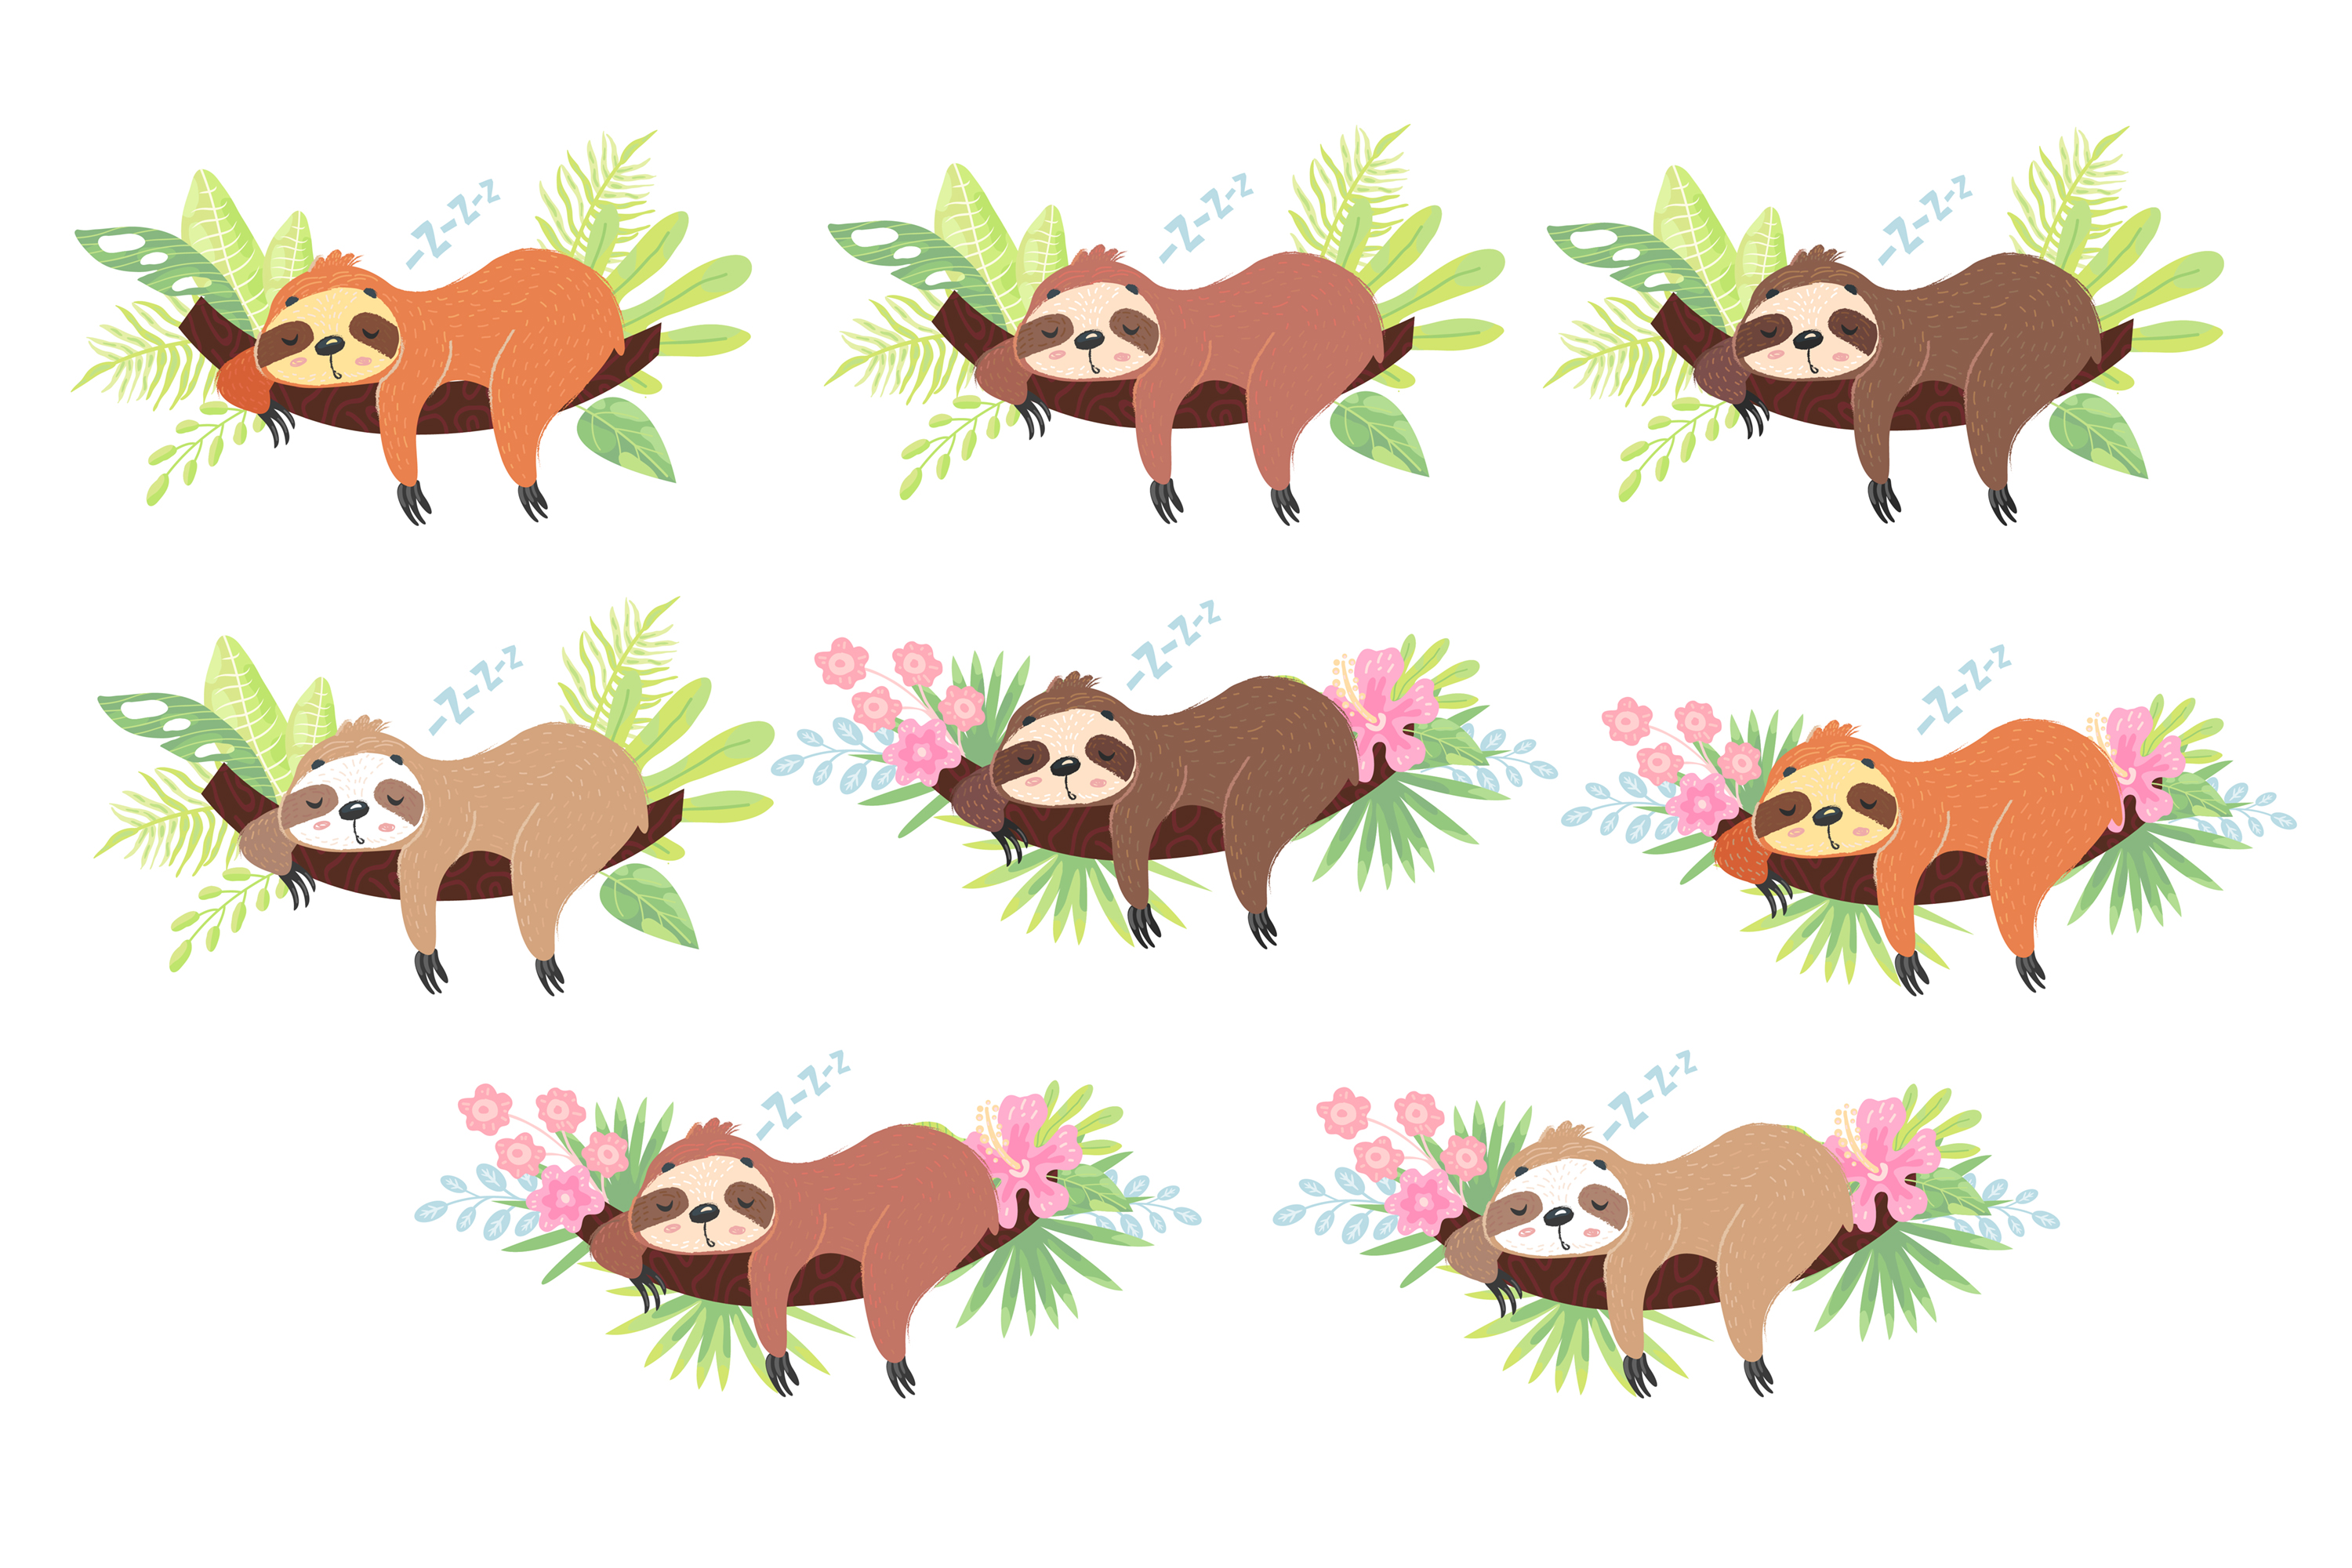 Sleepy Sloth Clipart Collection, Vector and Png example image 2